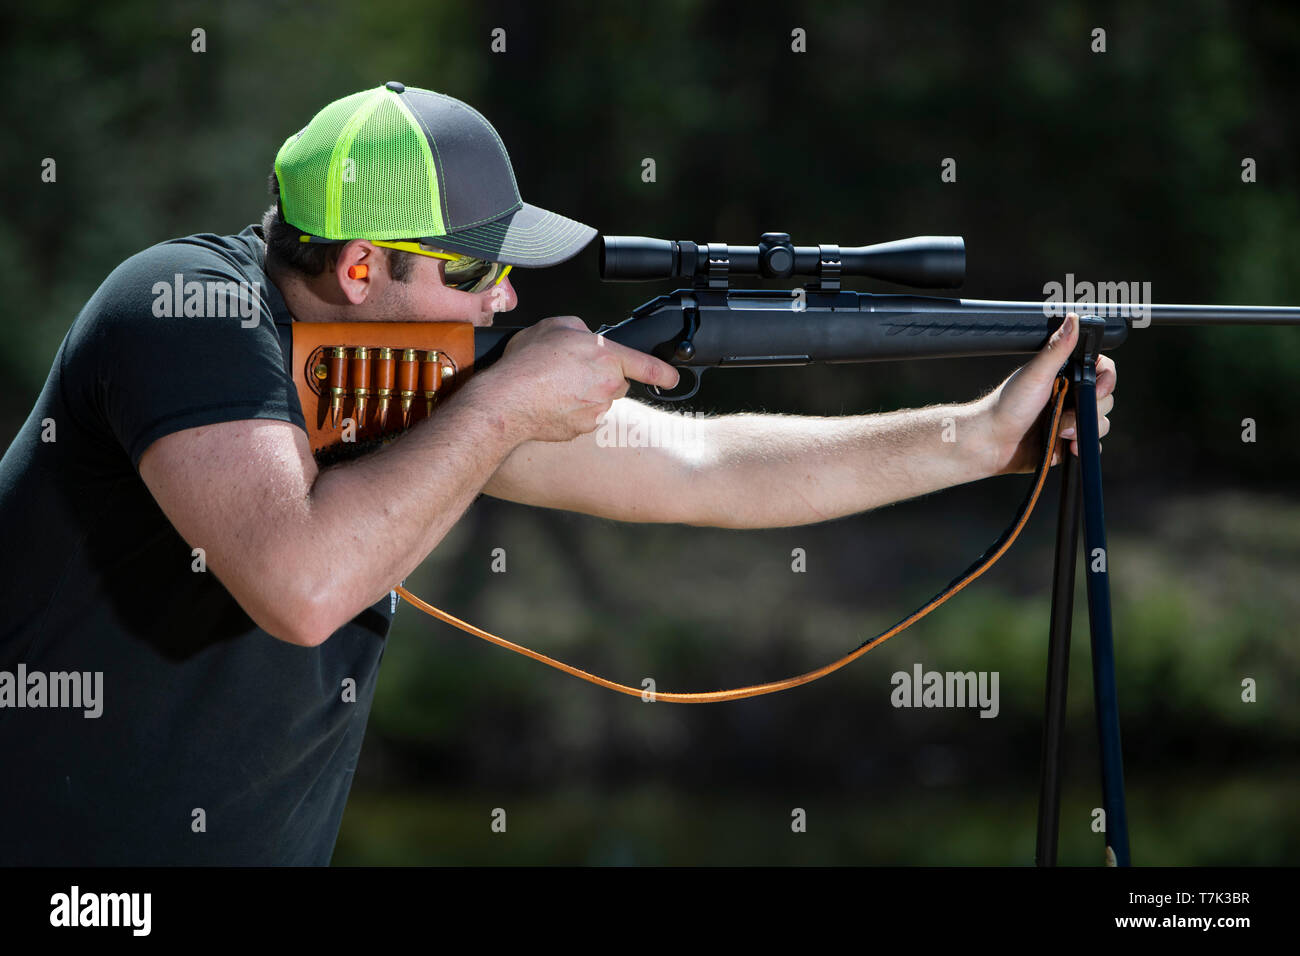 A man aiming a rifle that is resting on shooting sticks. - Stock Image